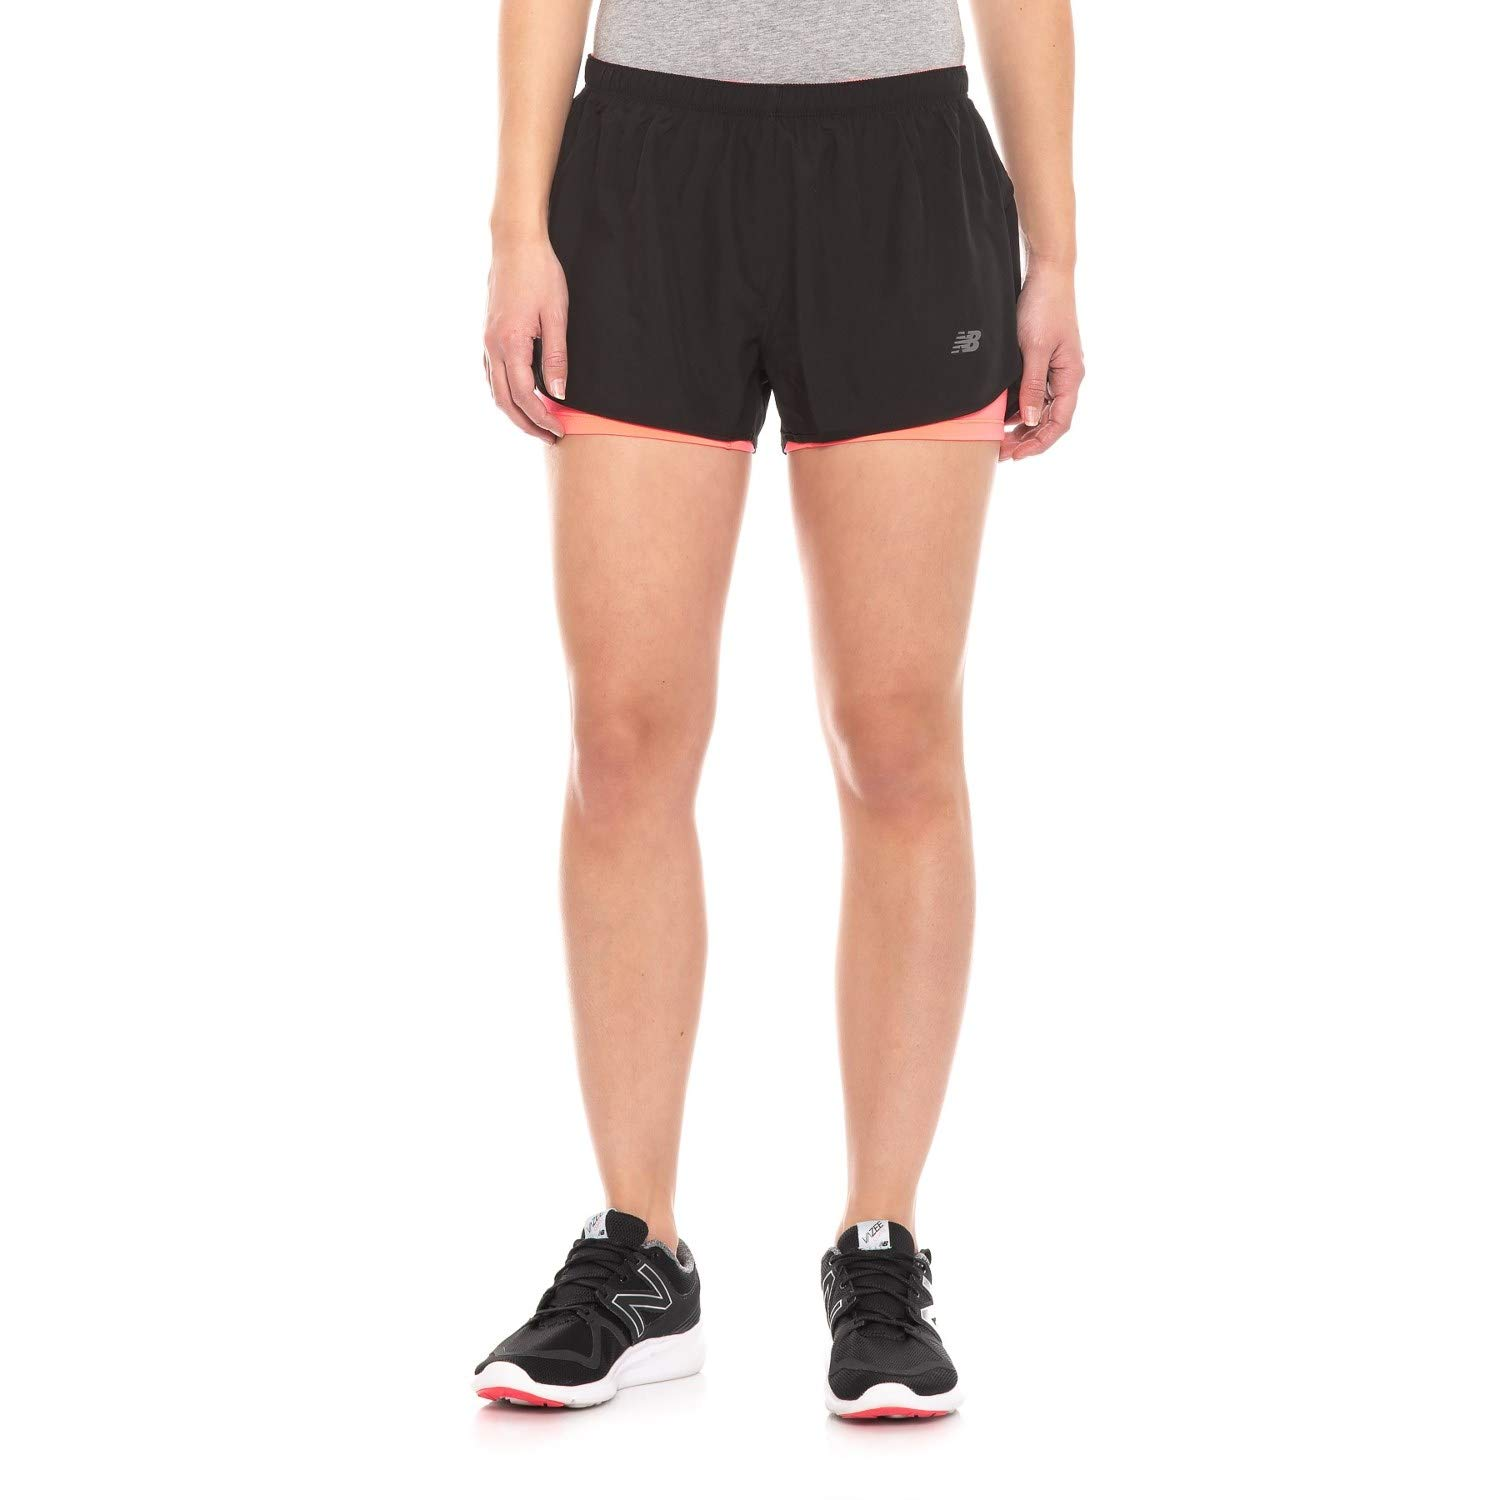 New Balance Women's 2-in-1 Woven Shorts, Blk/Guava, Large by New Balance